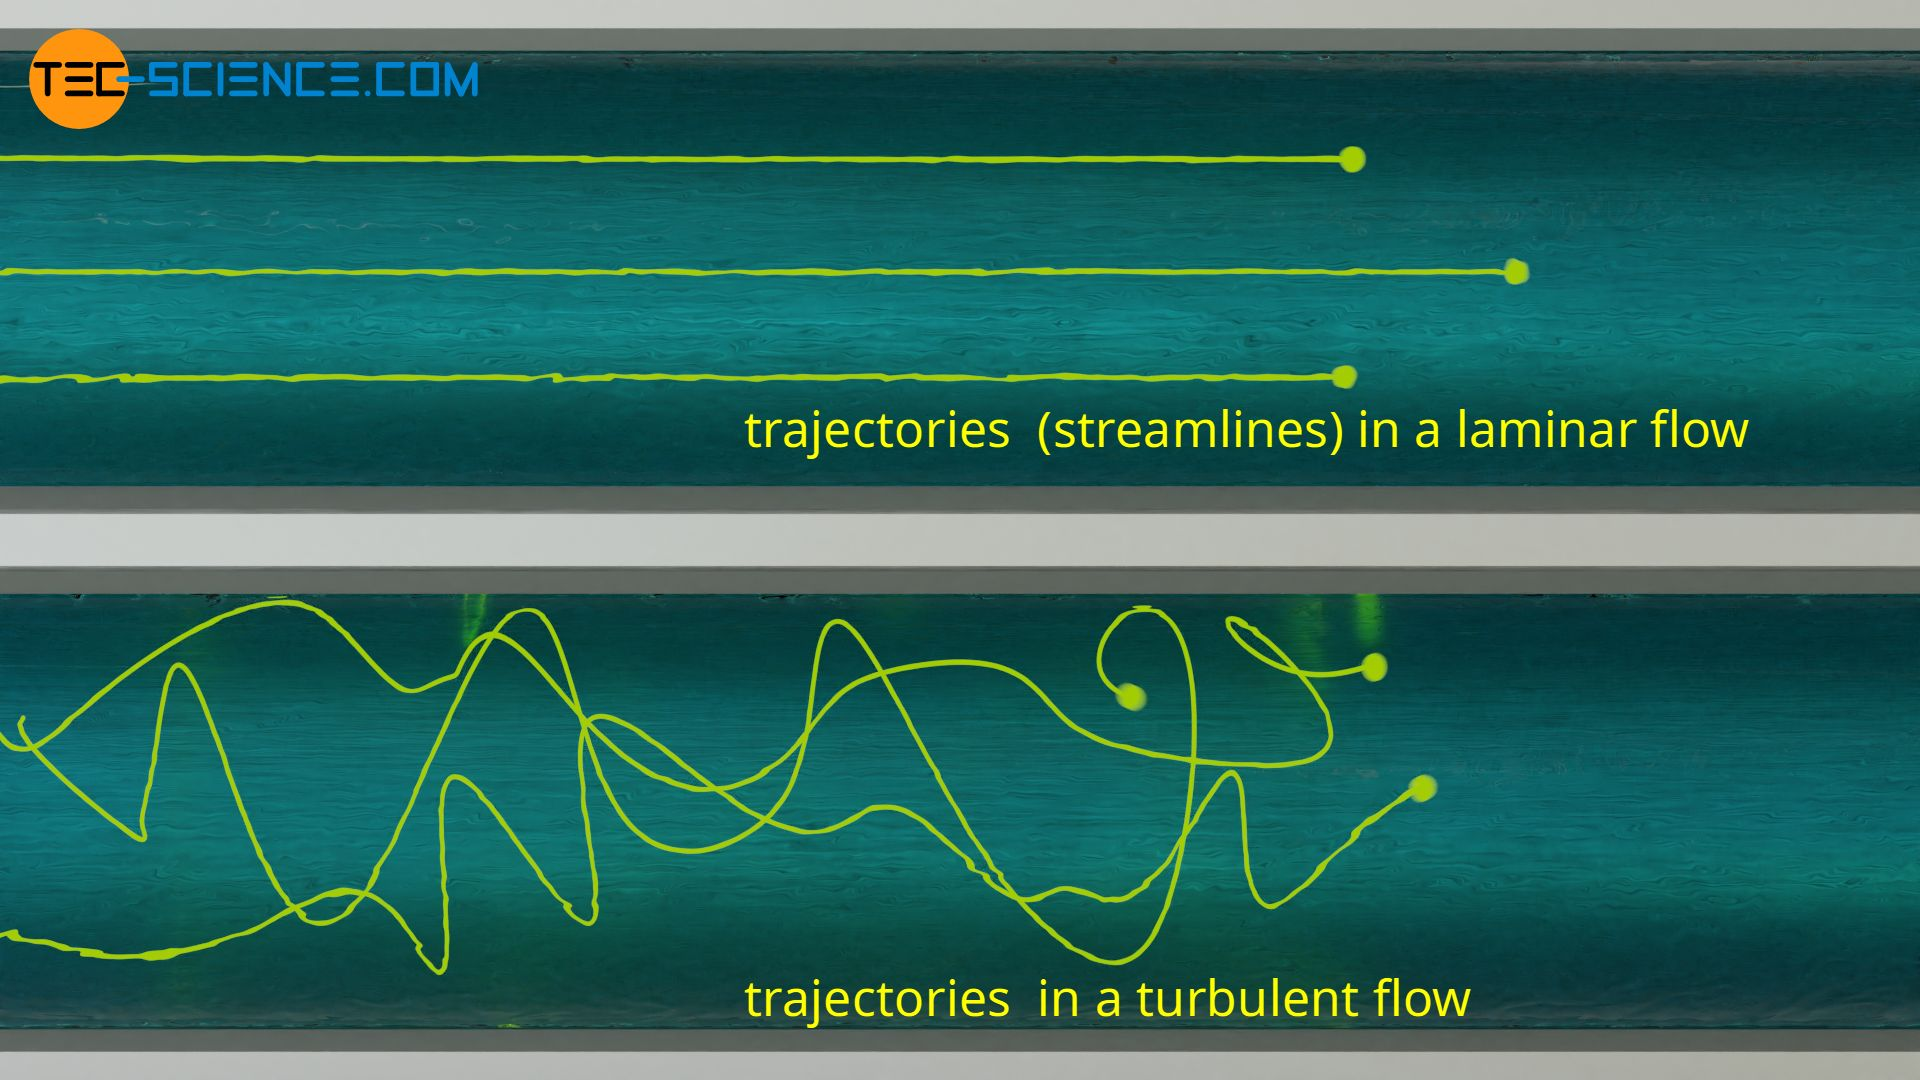 Pathlines in a laminar and a turbulent flow